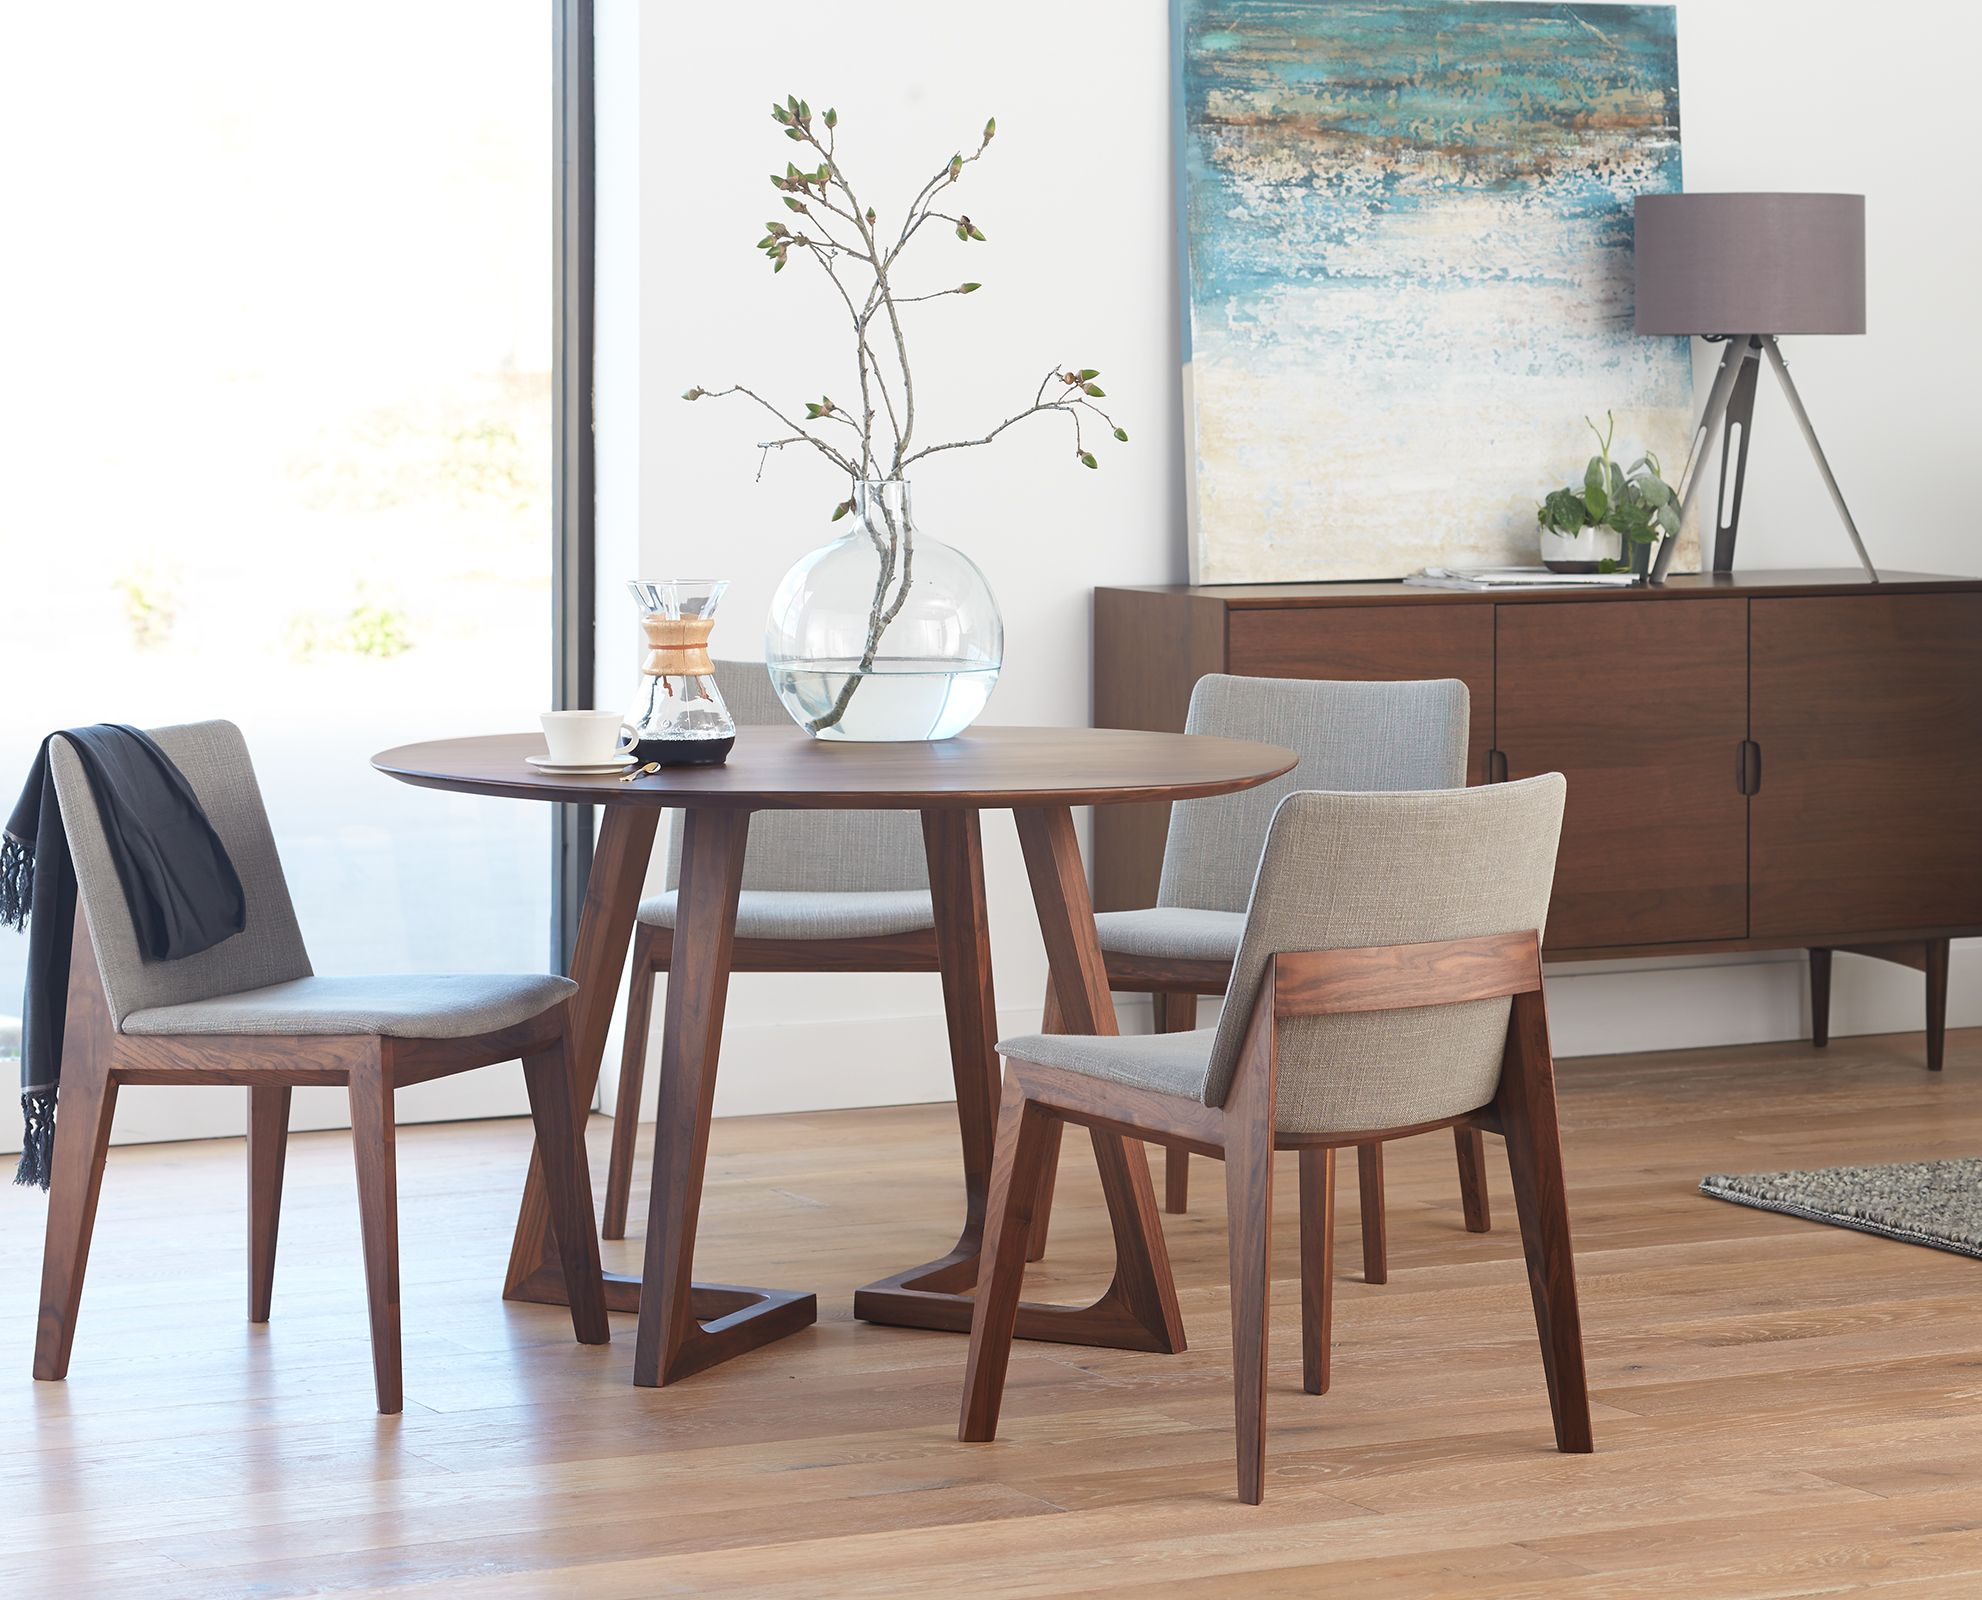 Round table and chairs from dania condo pinterest for Dining room table and chair ideas